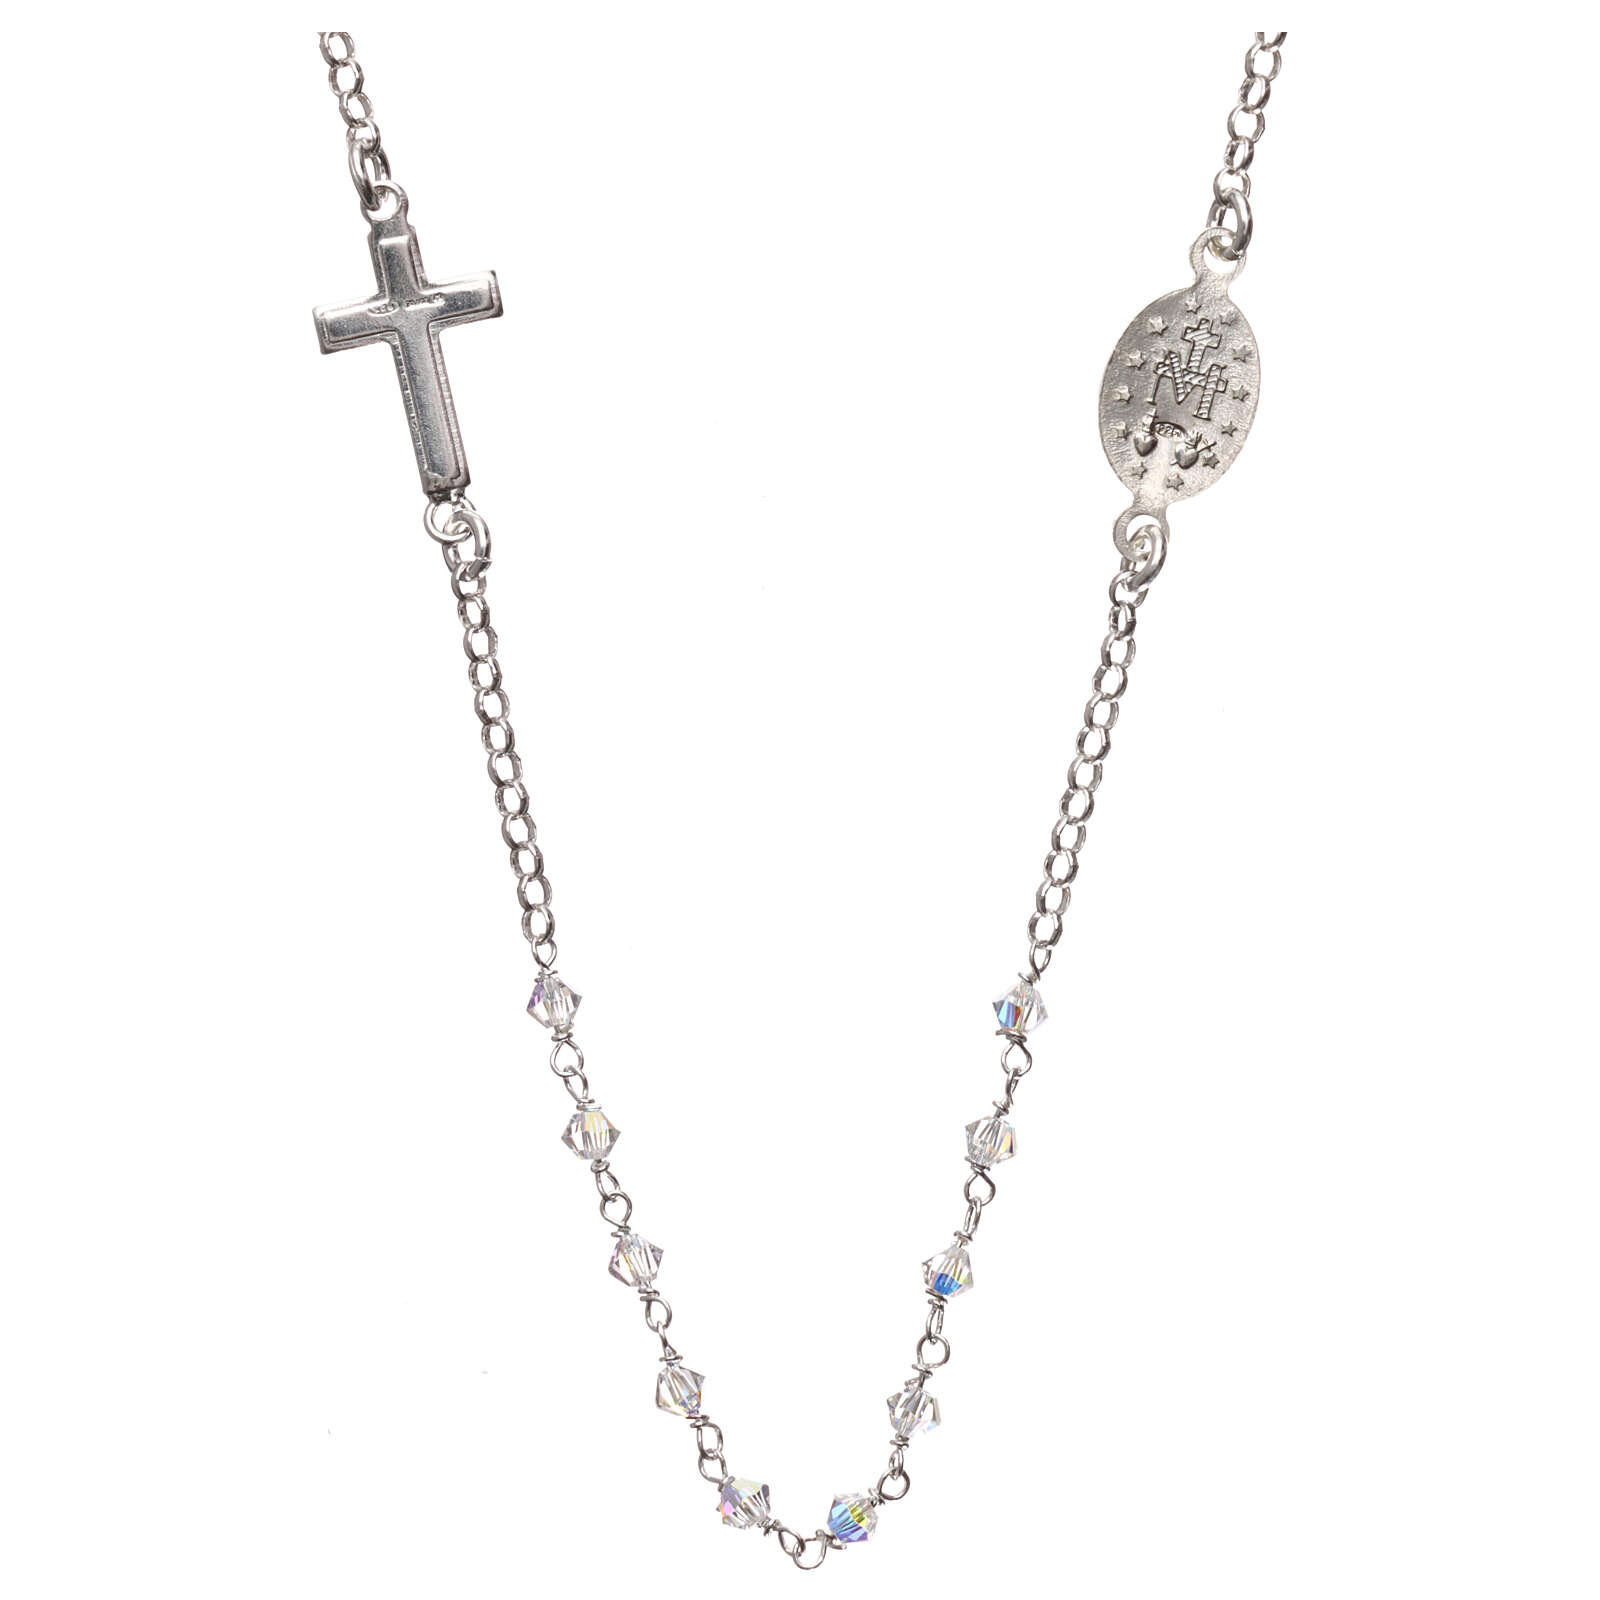 Rosary necklace 925 silver with transparent Swarovski 4